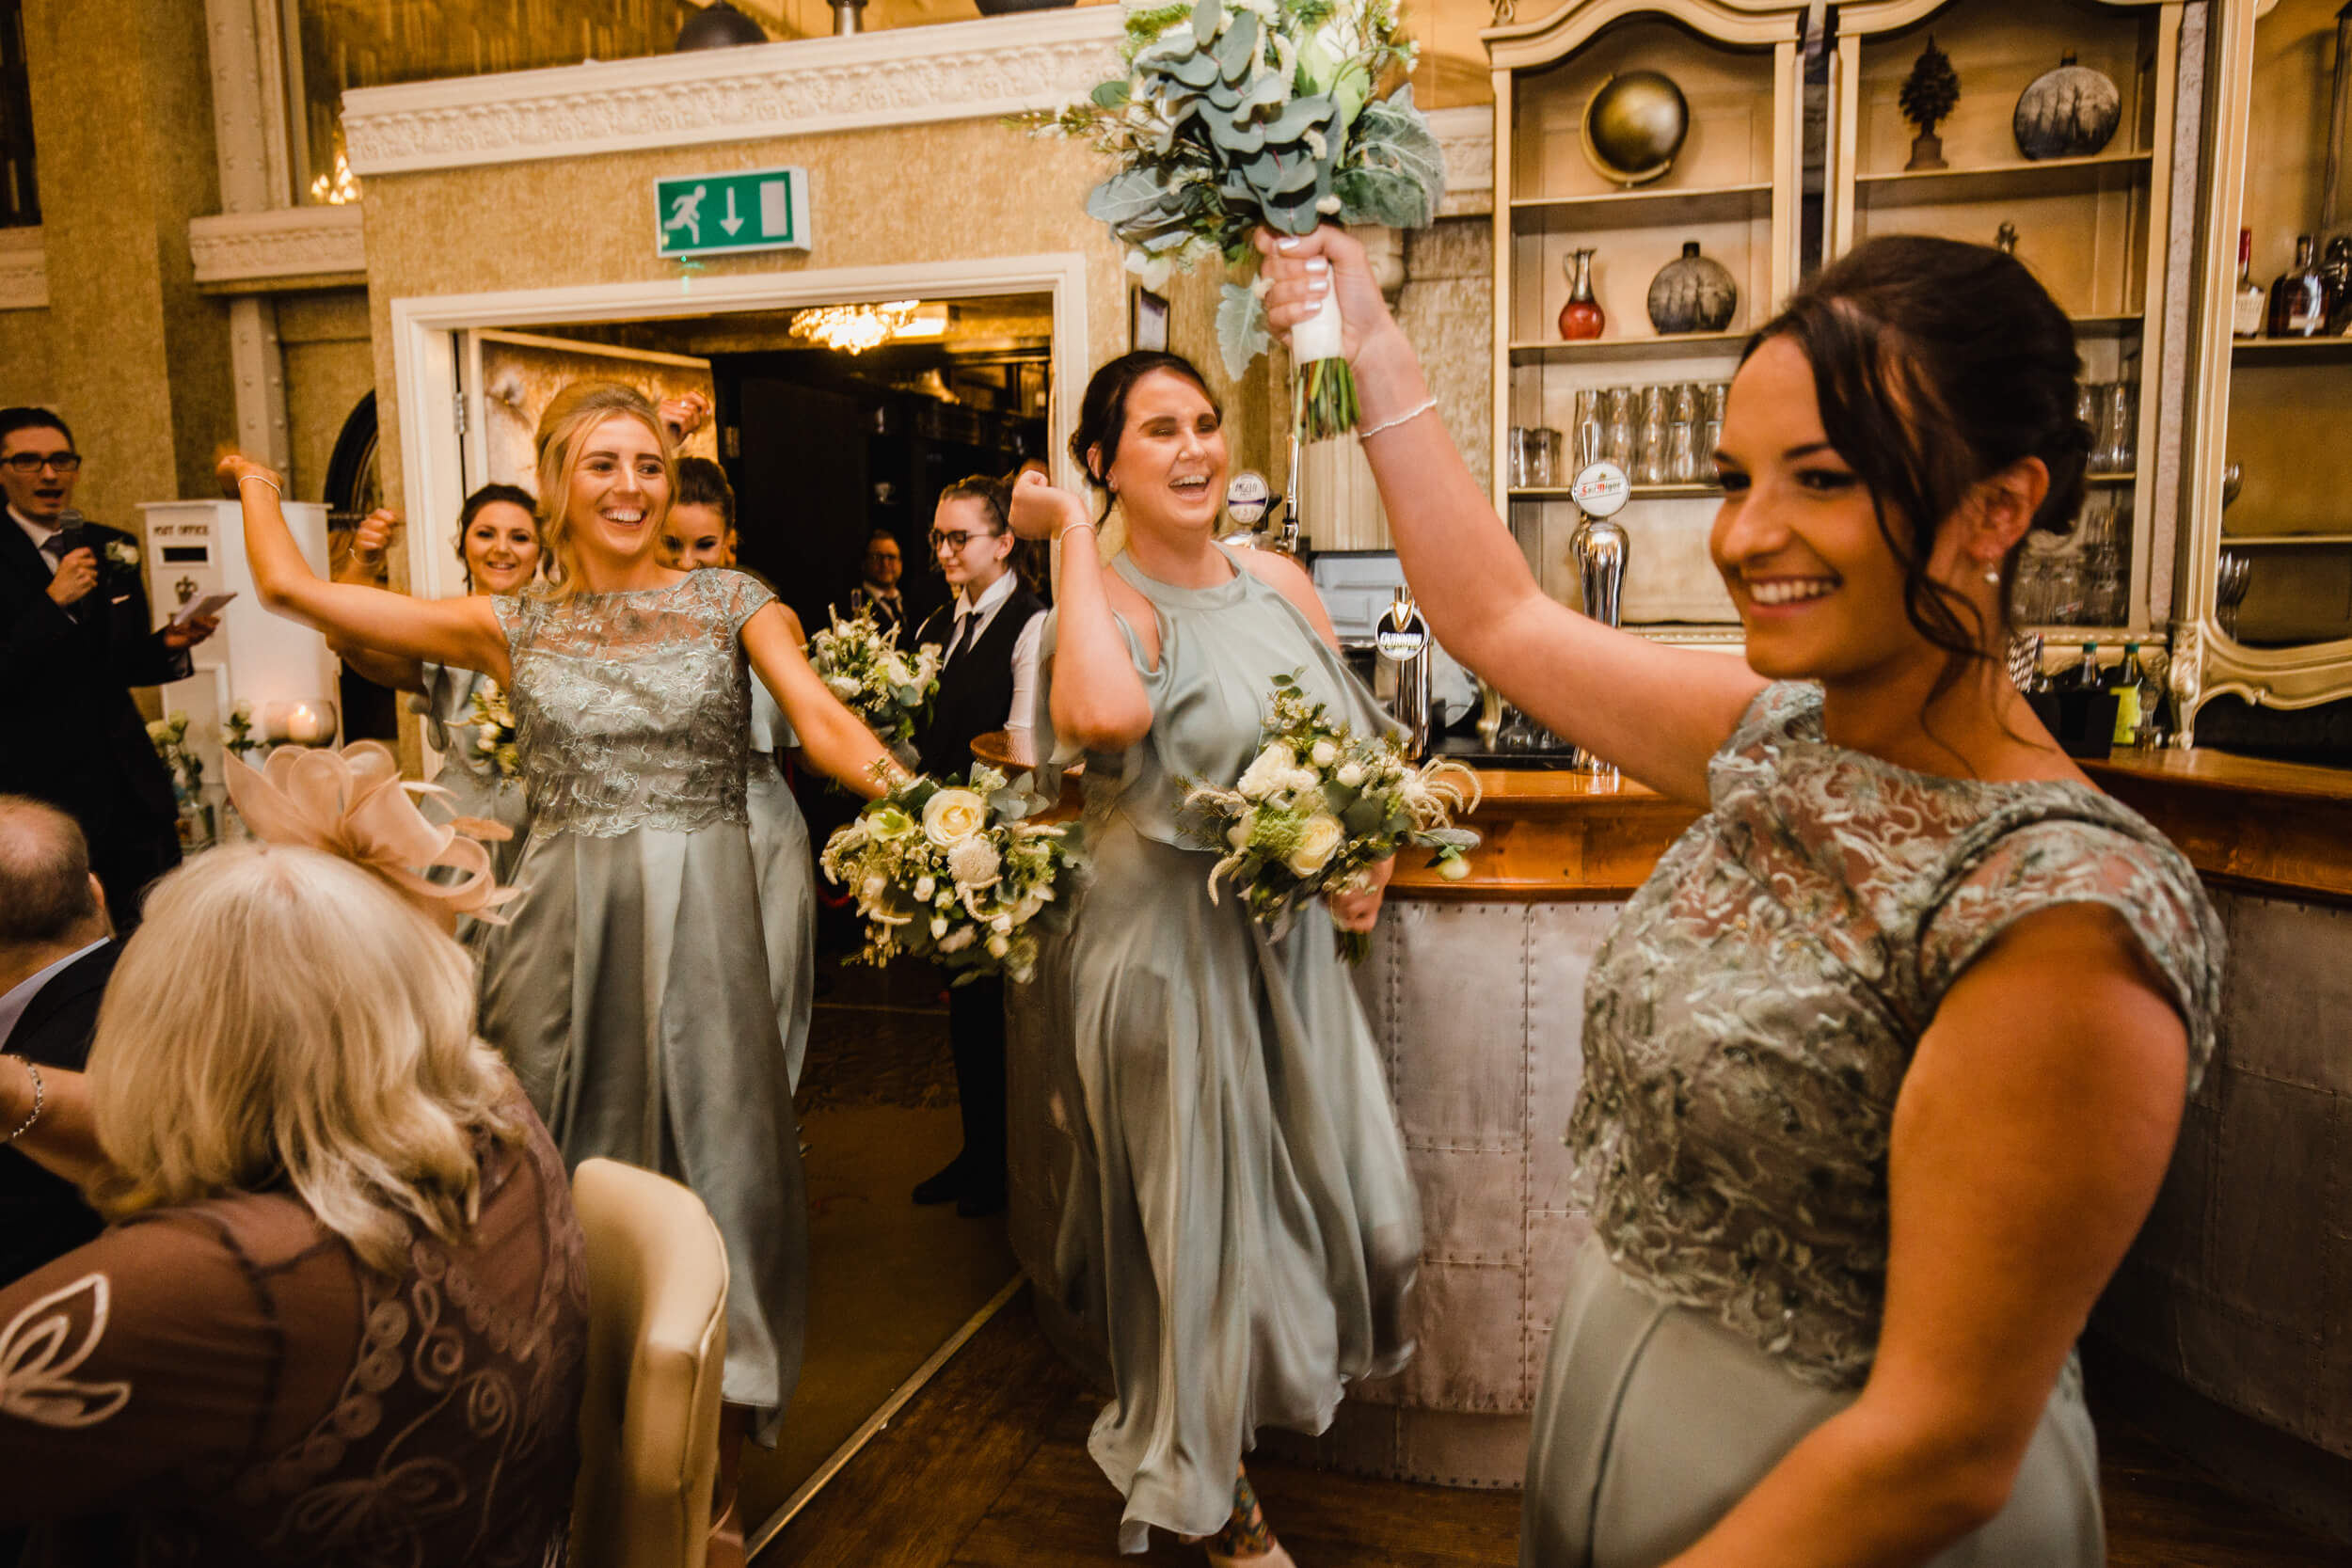 bridesmaids entering wedding breakfast room with dance and waving bouquets in air